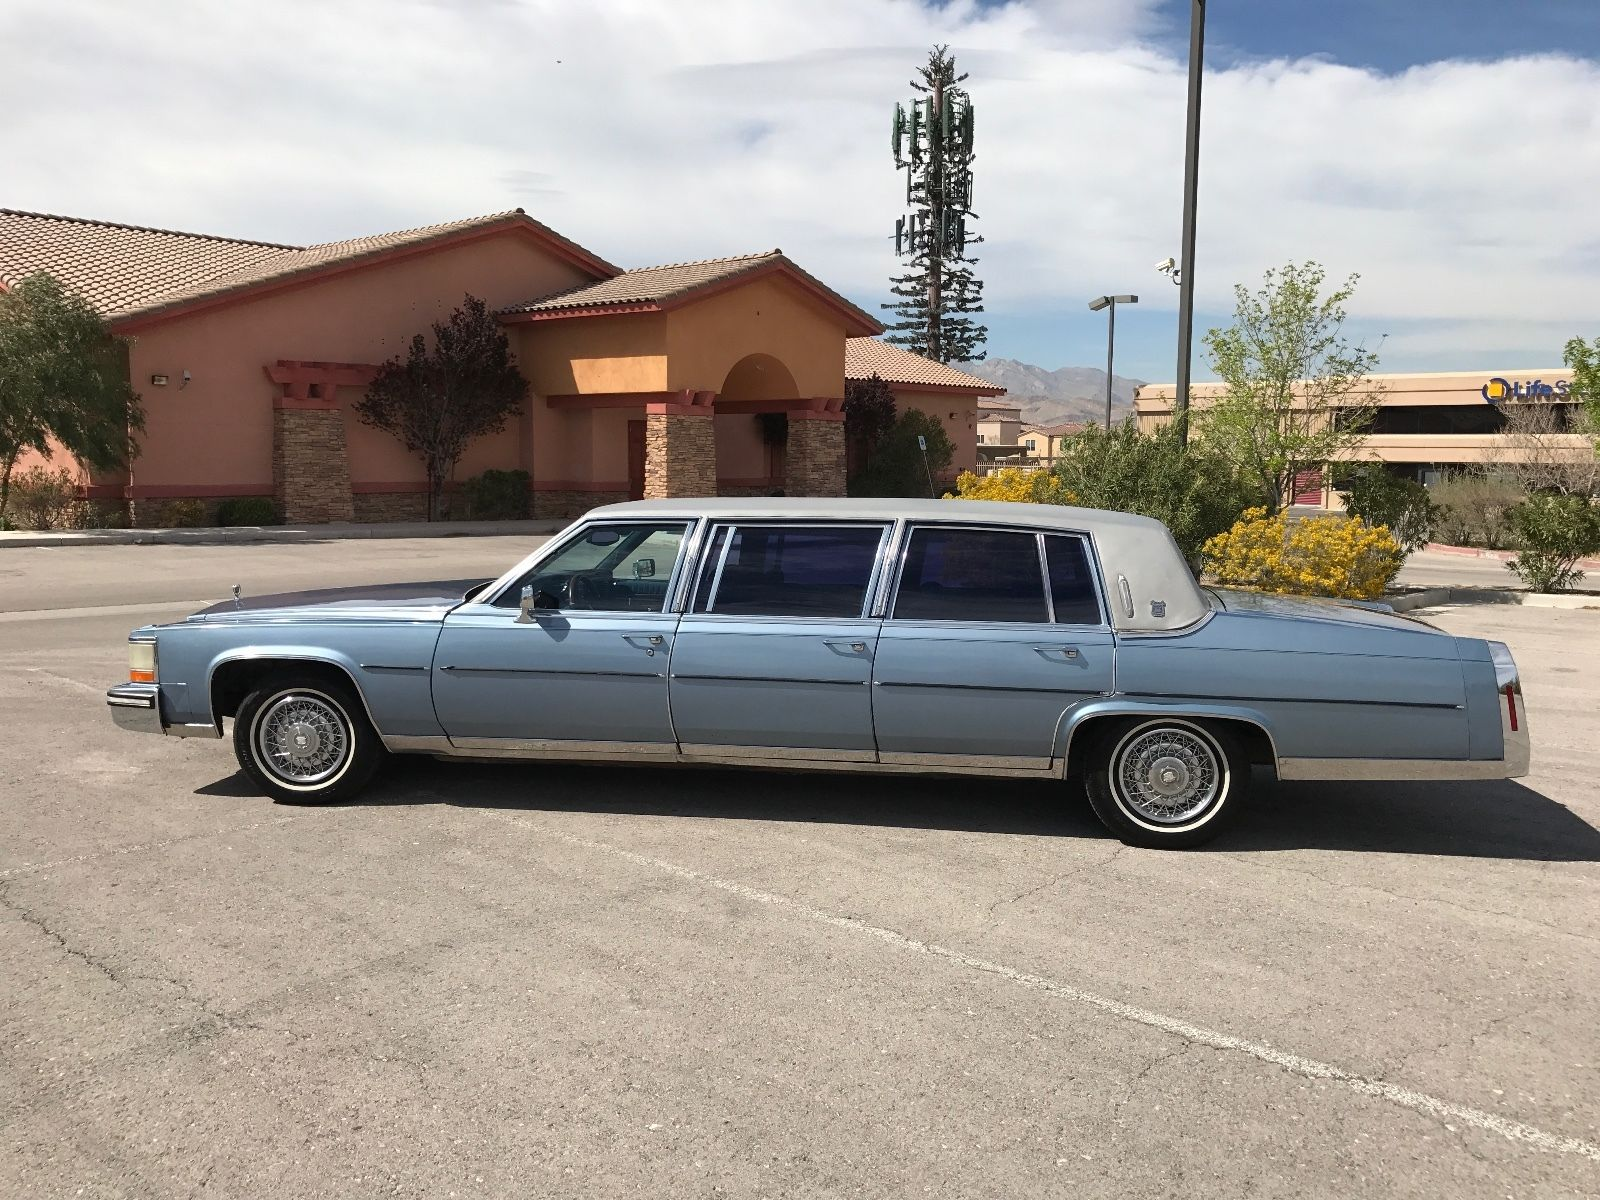 Six Door Cadillac Brougham Limousine For Sale